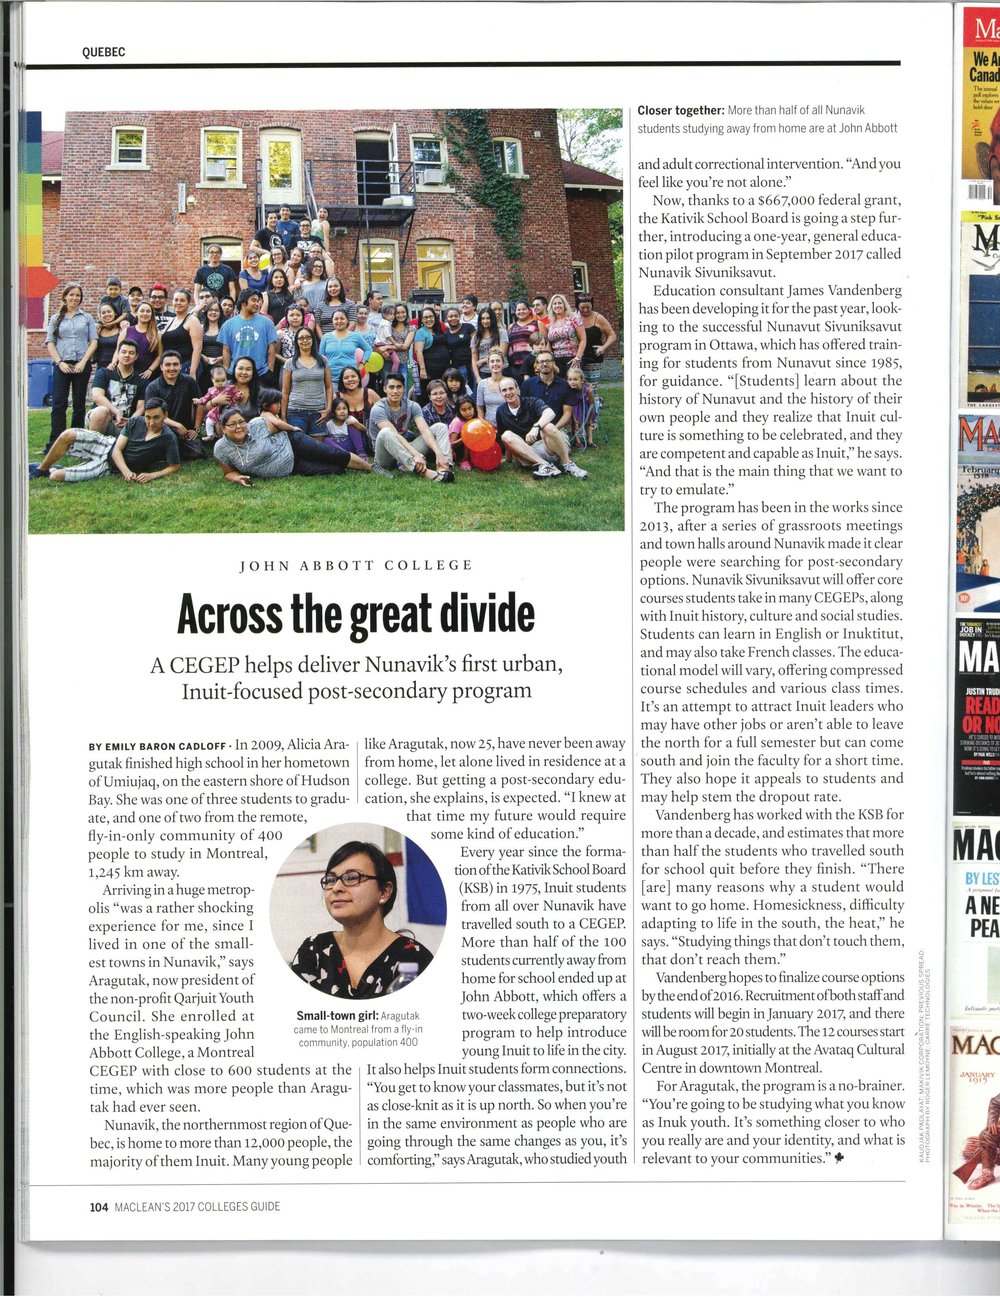 Story for Maclean's College Guide, November 2016